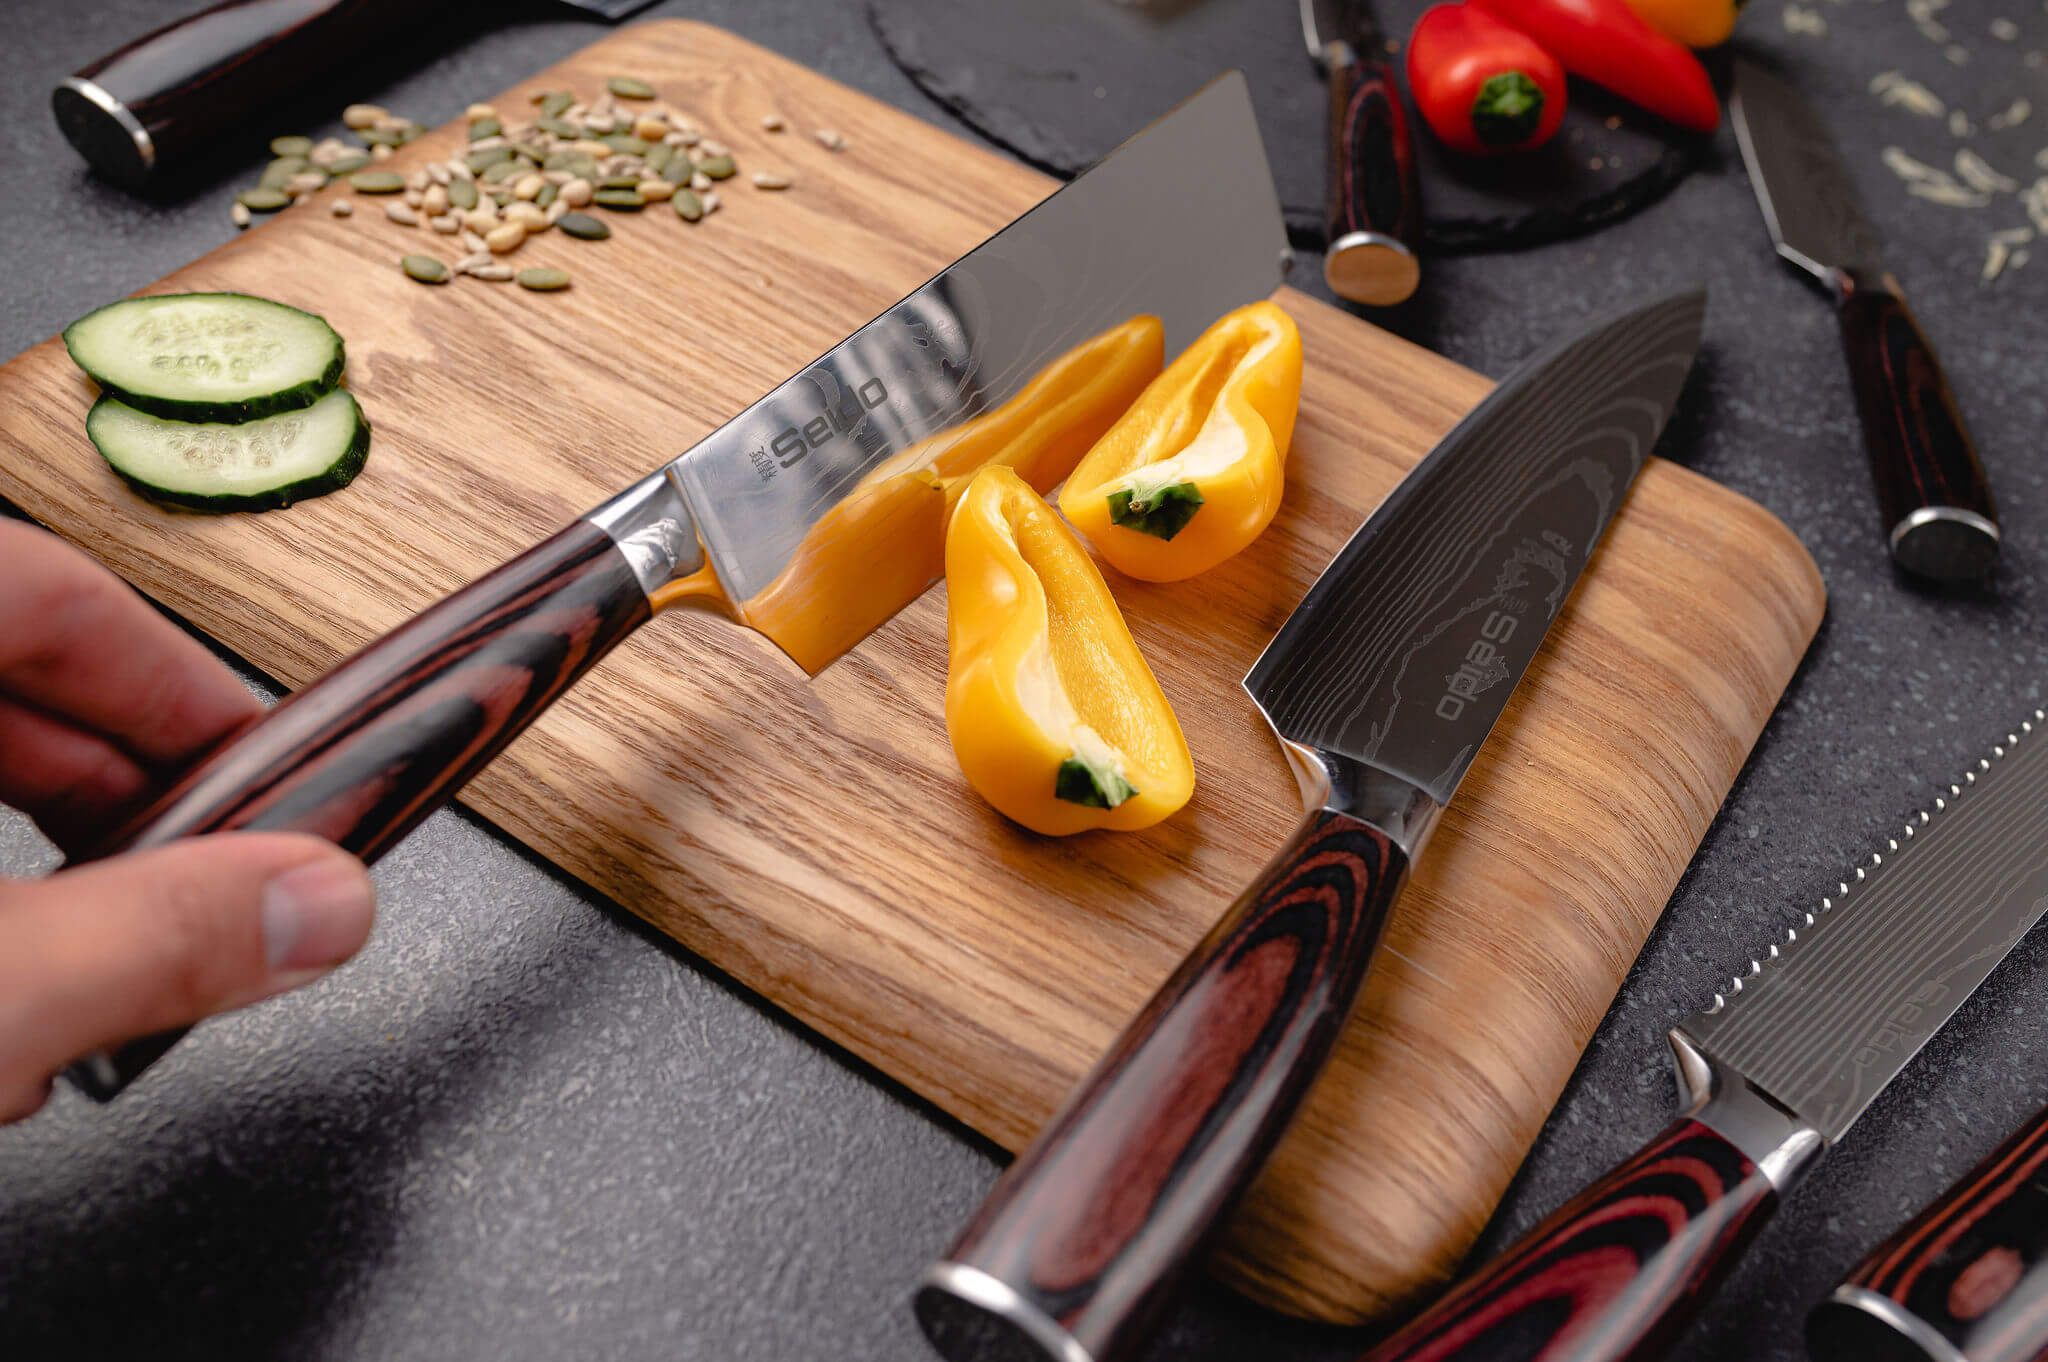 Our passion for cooking and Japanese culture, led us to our passion for creating the best and most affordable Japanese inspired kitchen knives